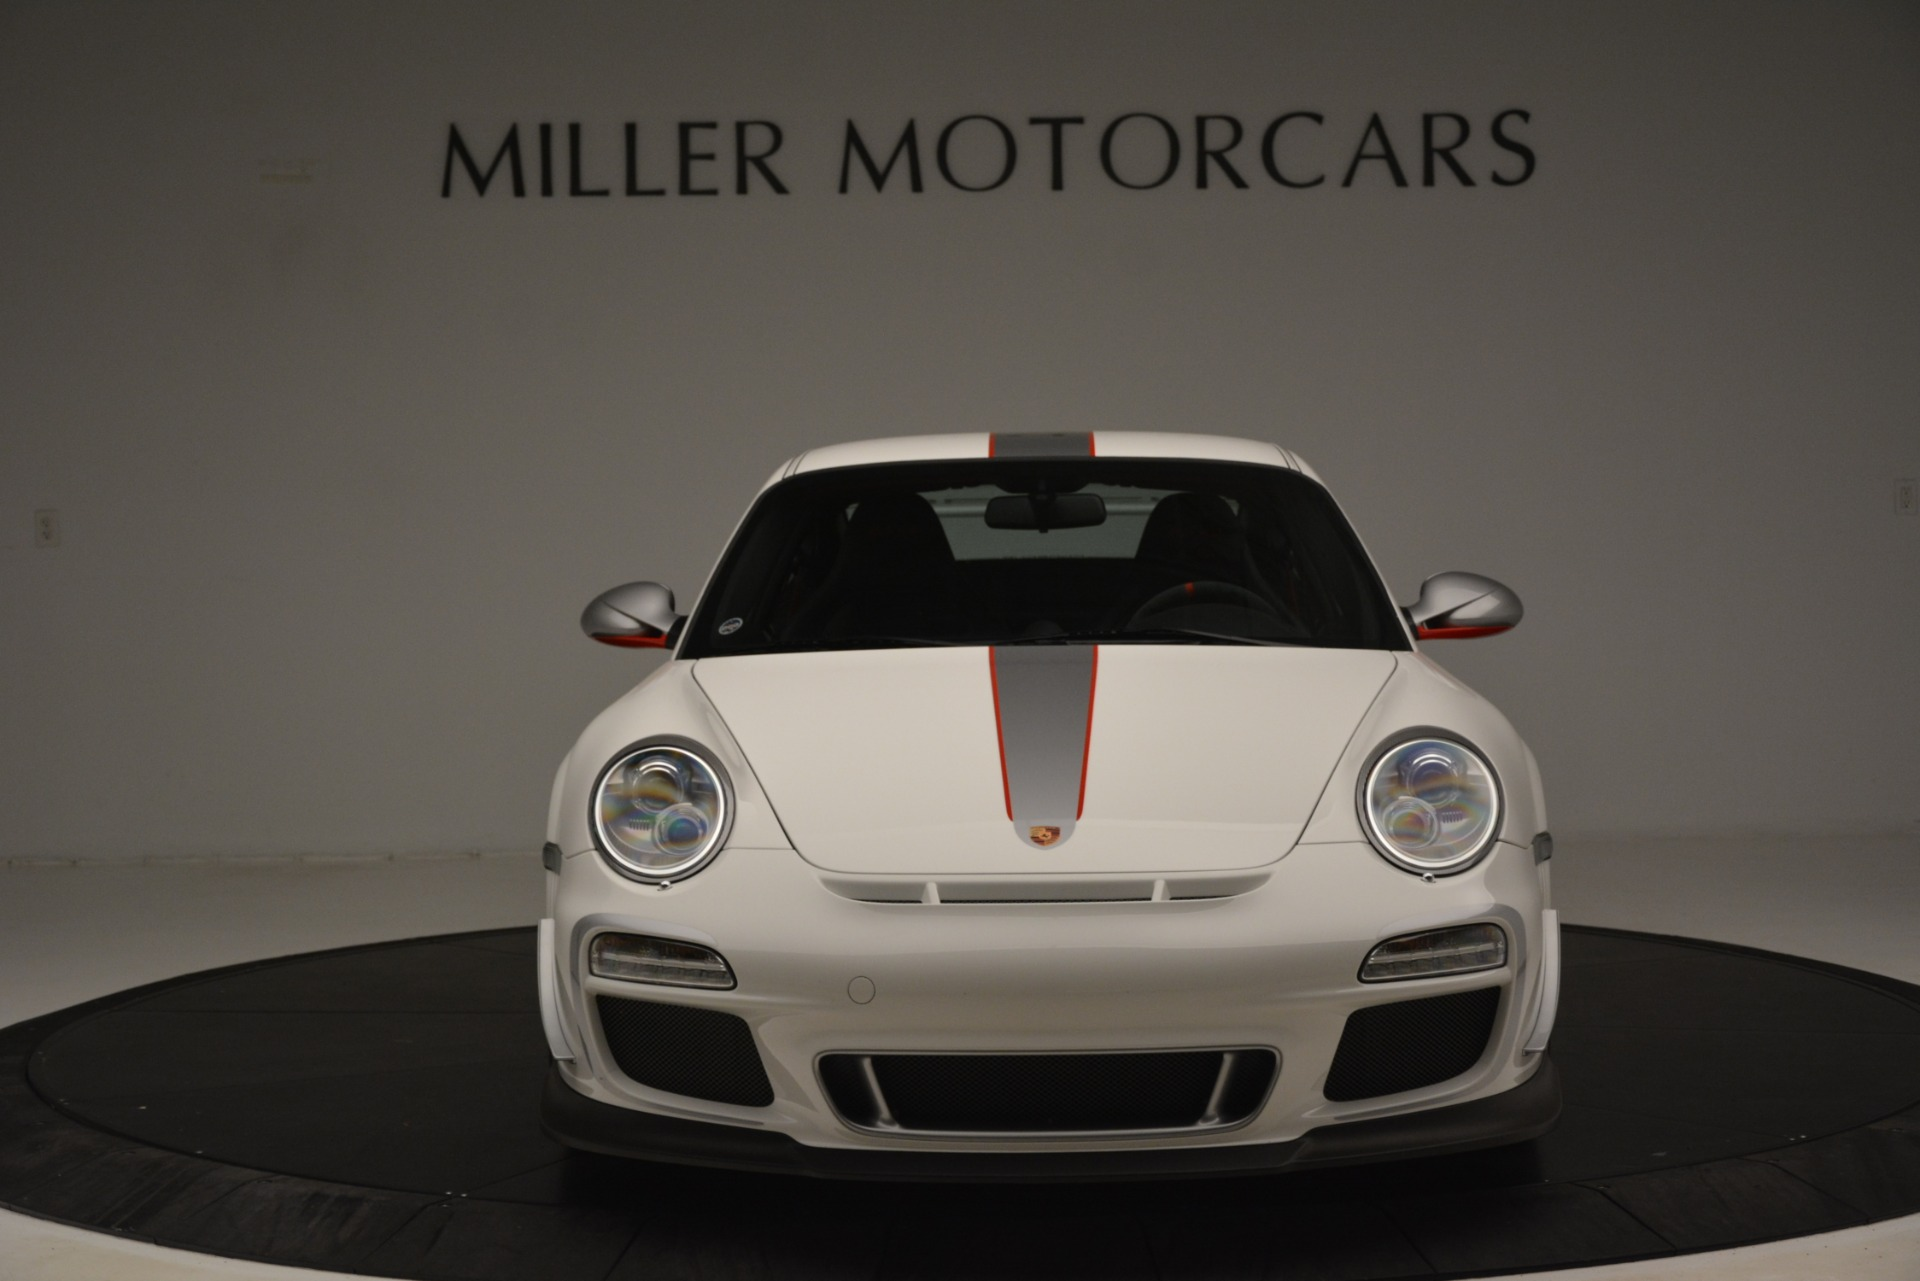 Used 2011 Porsche 911 GT3 RS 4.0 For Sale In Westport, CT 3188_p7